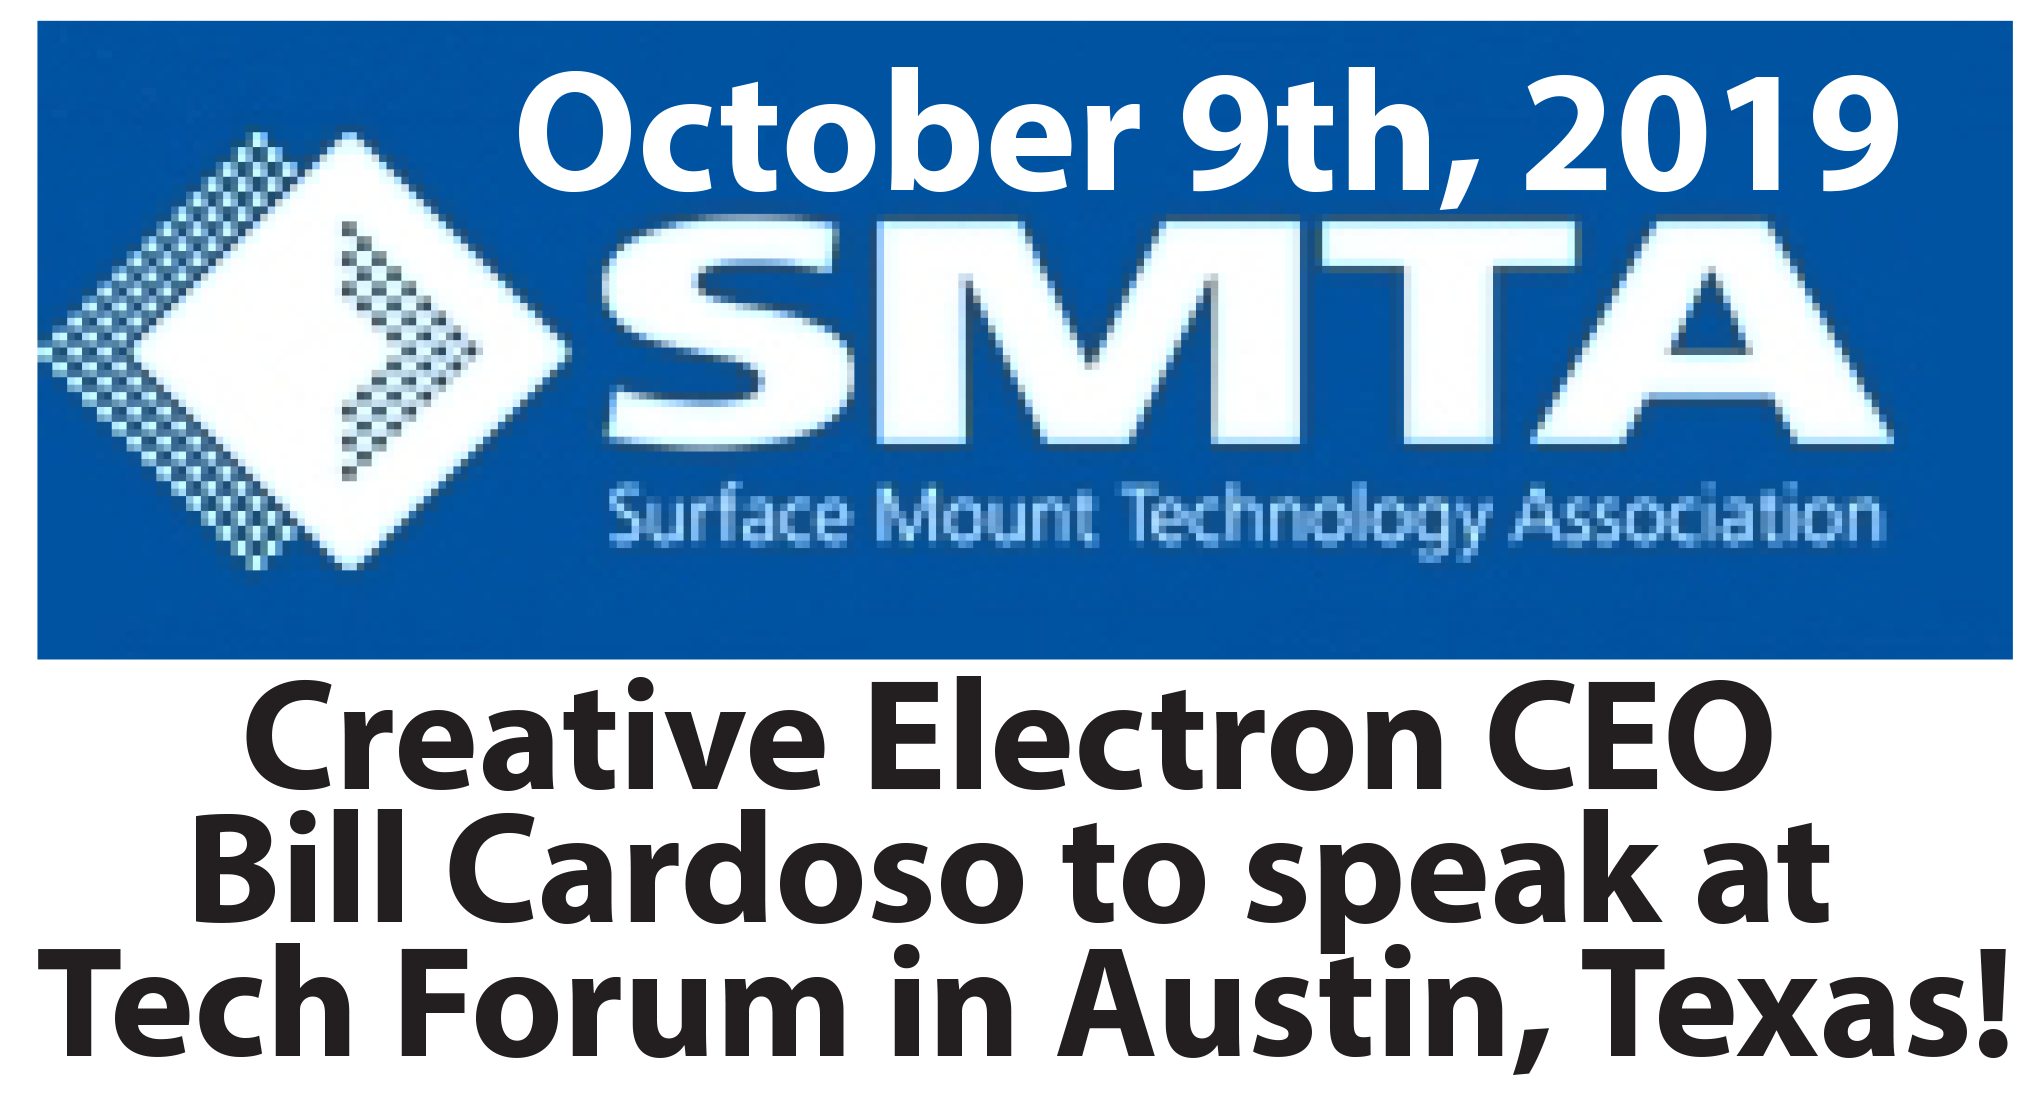 Creative Electron CEO Bill Cardoso to speak at Tech Forum in Austin, Texas!